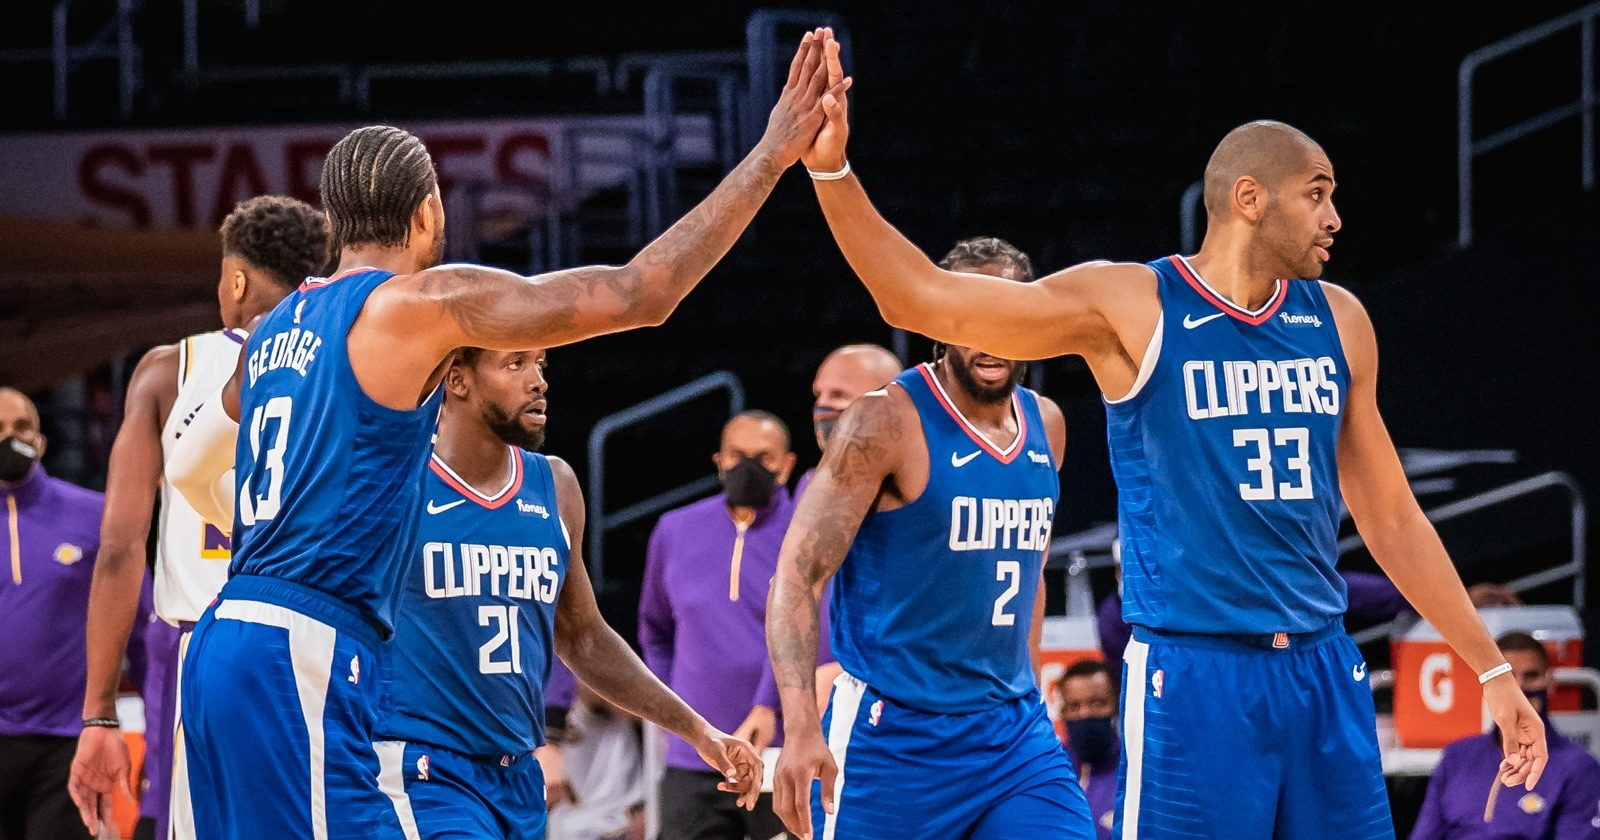 TLTJTP: Clippers Start the Season 2-1